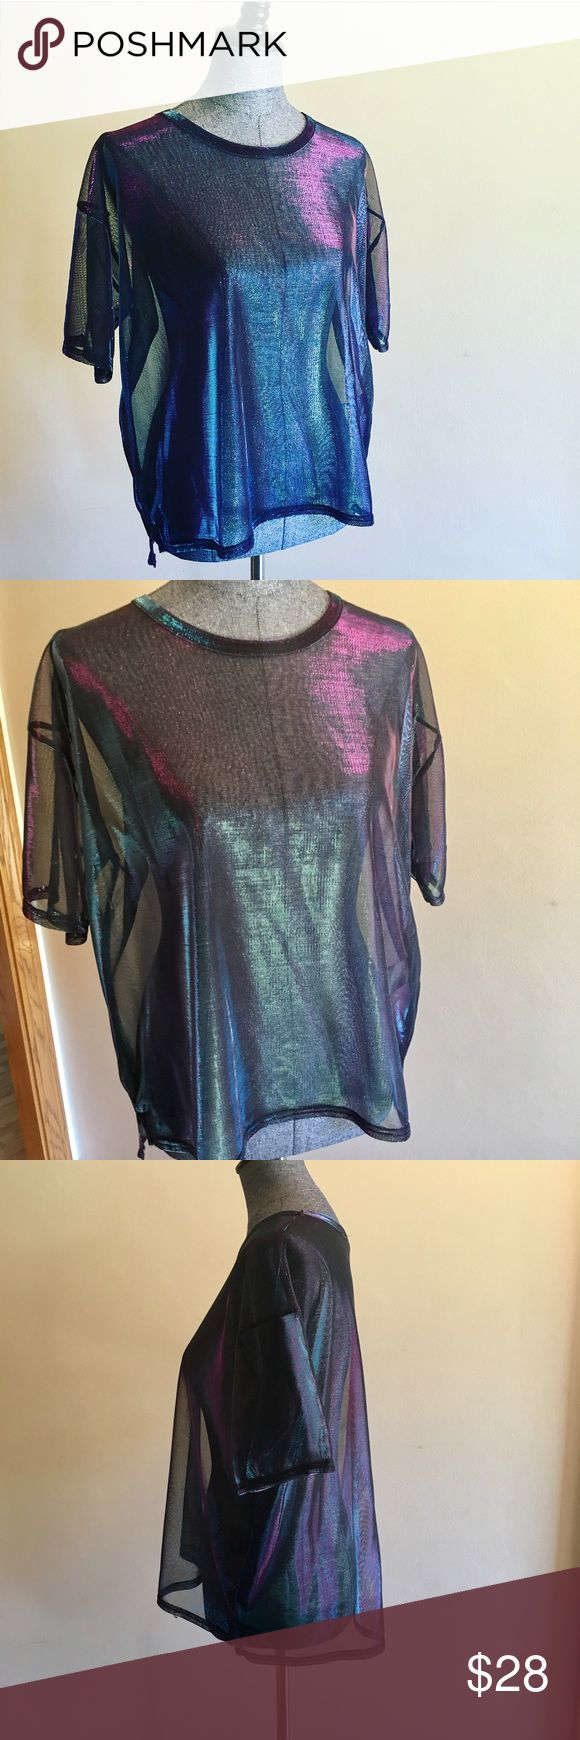 🌚Mesh Metallic Tee Awesome and trendy metallic mesh short sleeve tee purchased at Urban Outfitters in manhattan. took the tags off but never wore it, perfect condition. Silence + Noise brand. Urban Outfitters Tops